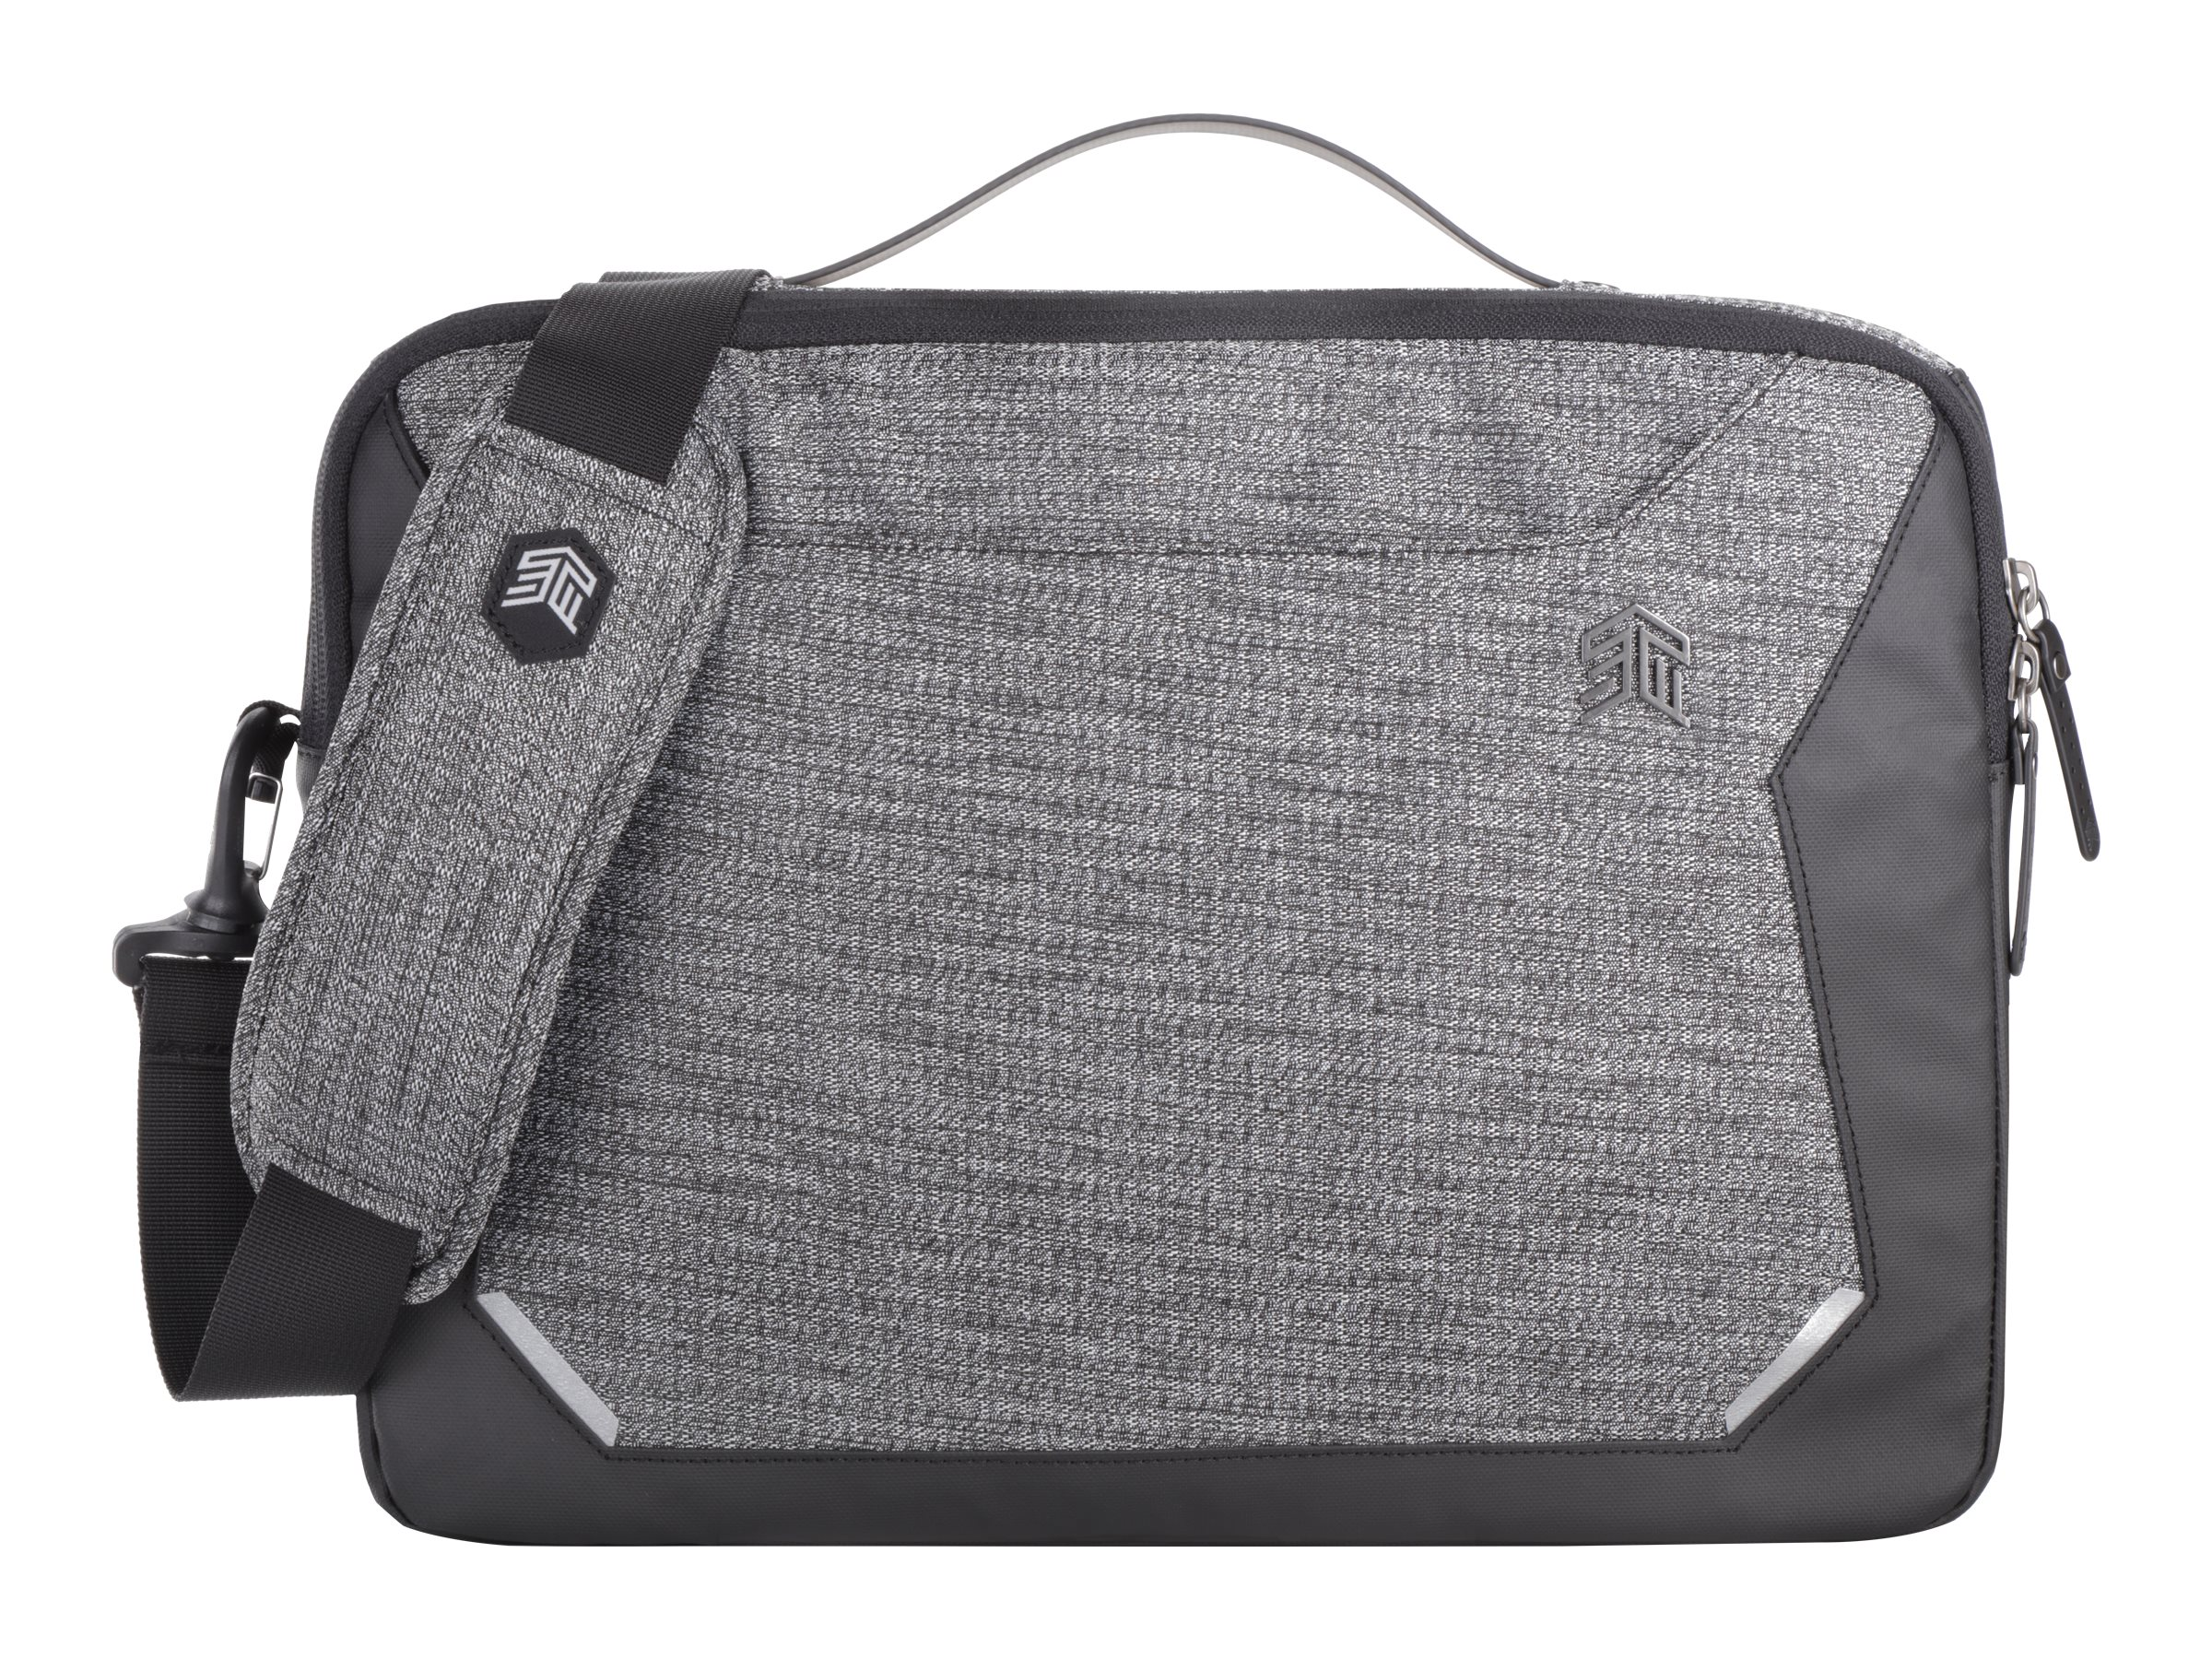 STM Myth notebook carrying case